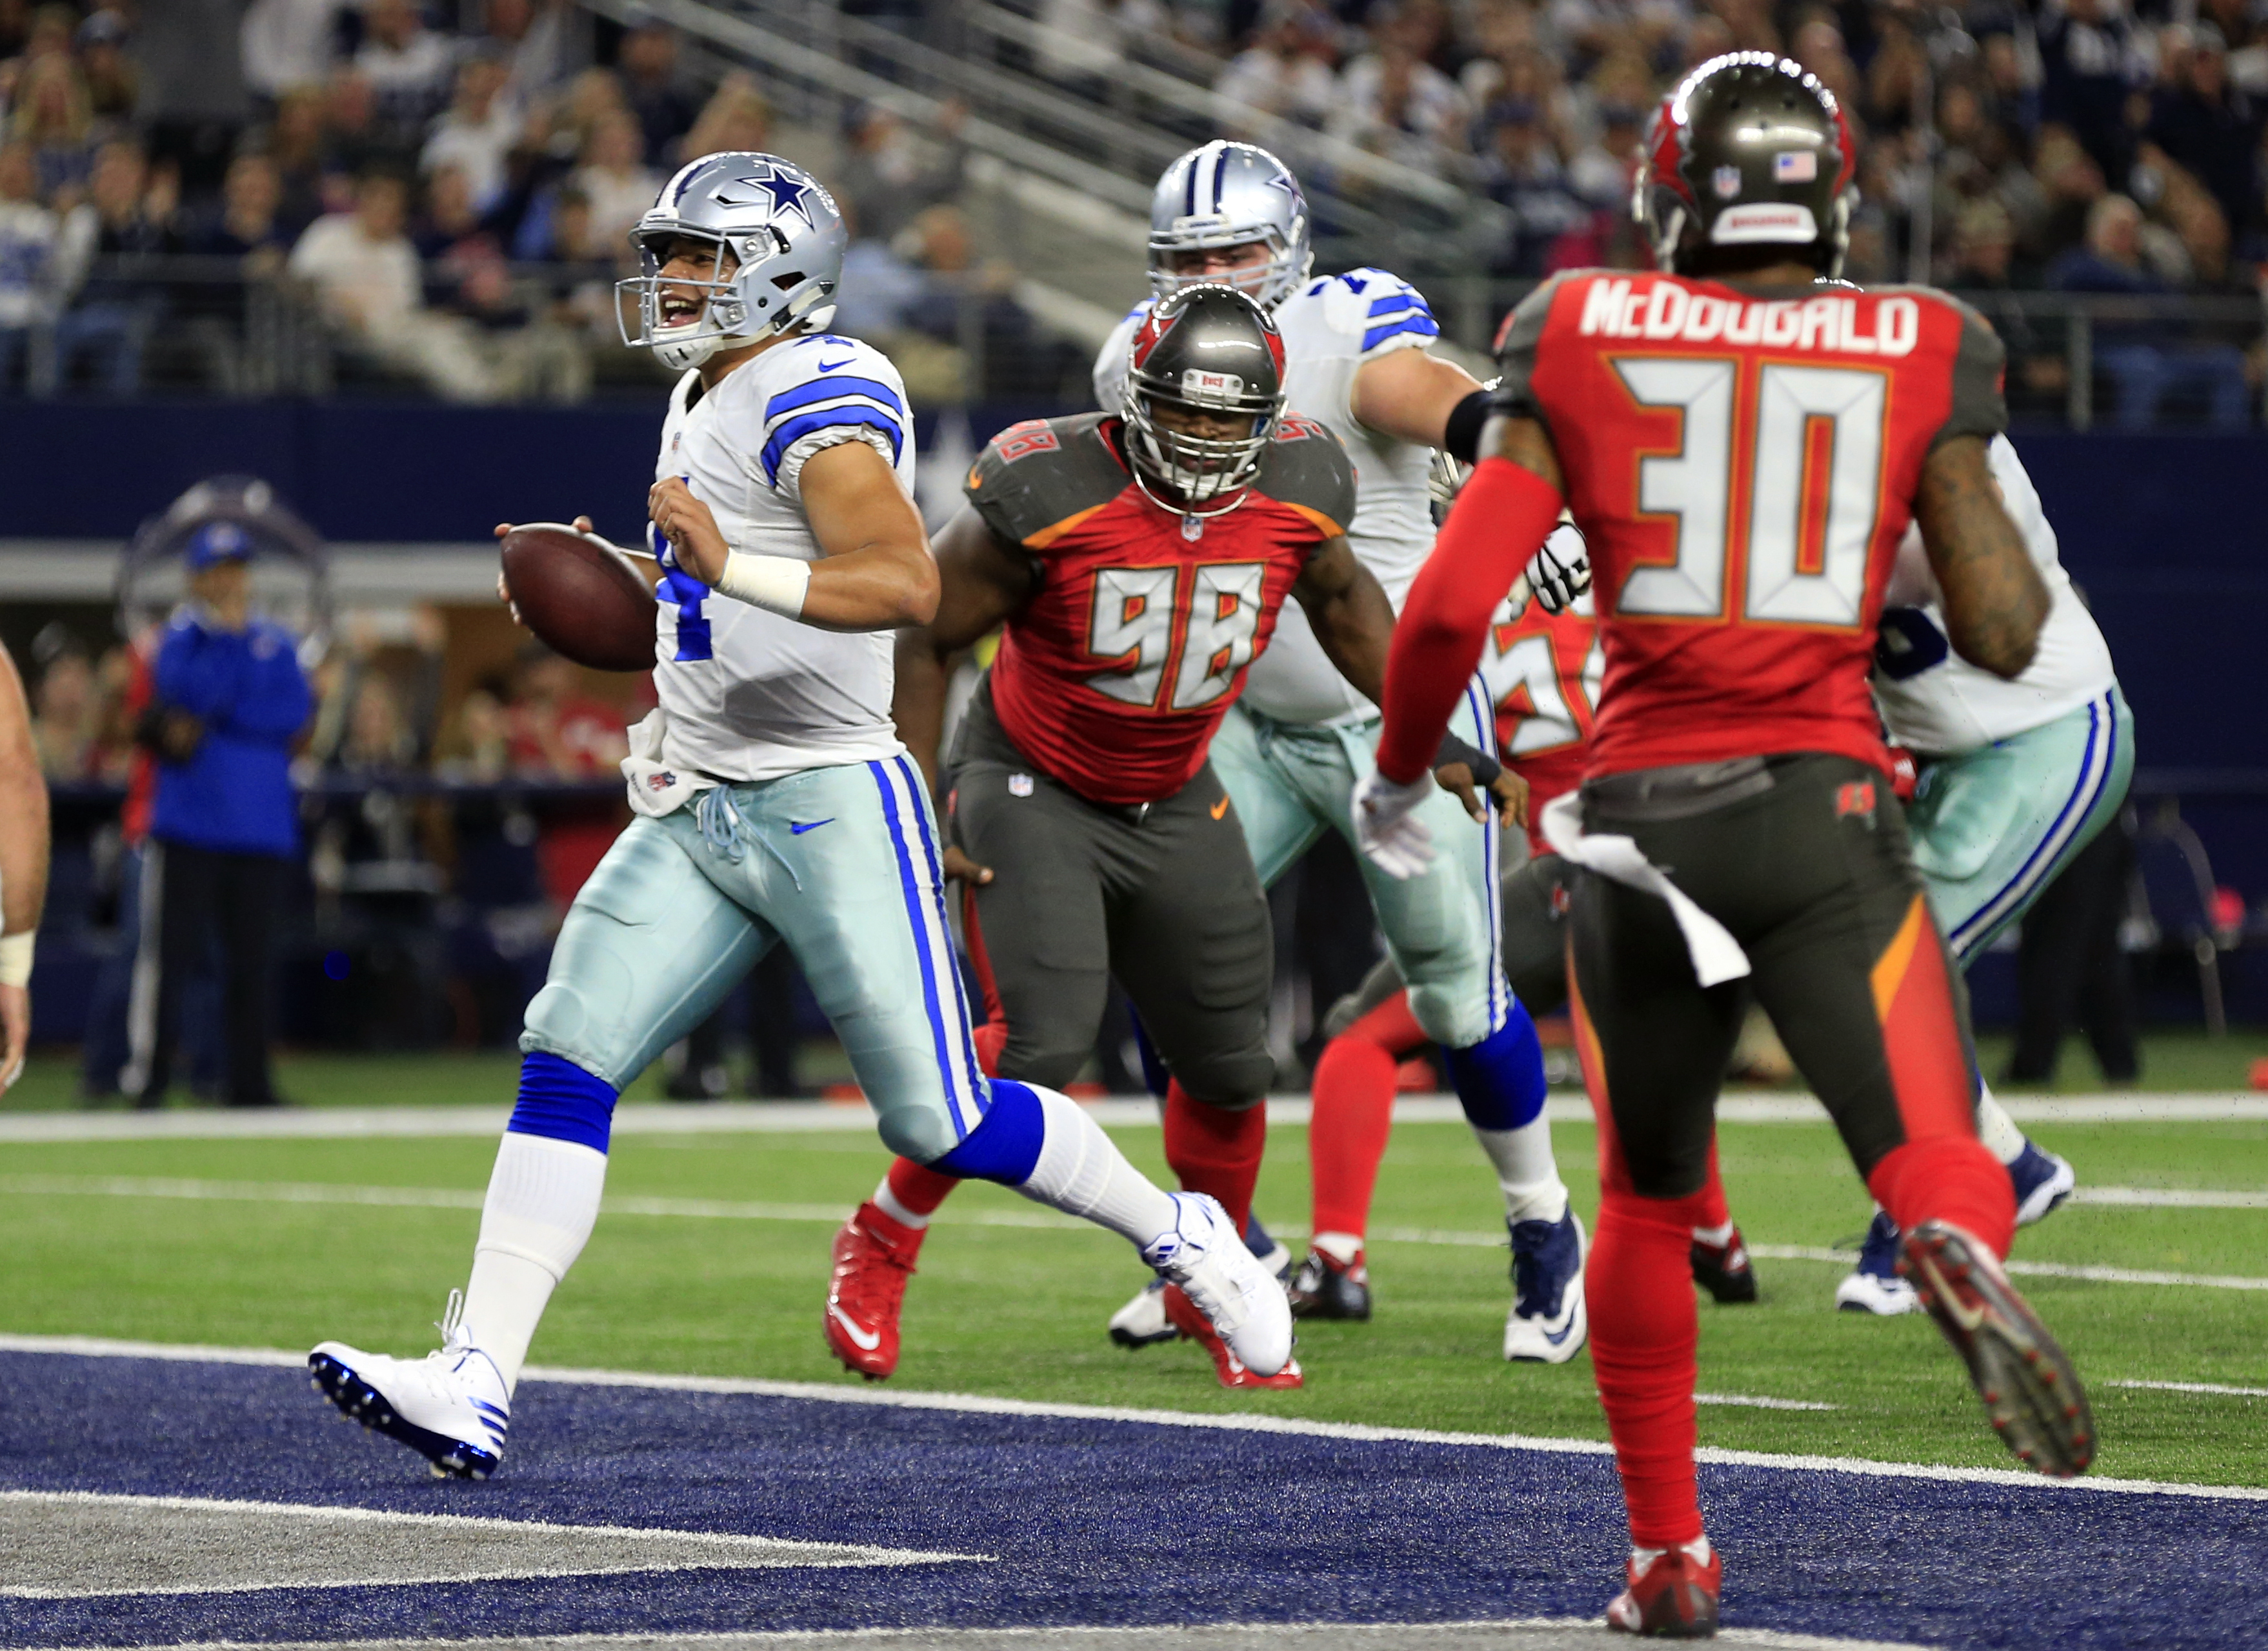 Dallas Cowboys quarterback Dak Prescott (4) breaks into the end zone for a touchdown as Clinton McDonald (98) and Bradley McDougald (30) watch in the first half of an NFL football game, Sunday, Dec. 18, 2016, in Arlington, Texas. (AP Photo/Ron Jenkins)